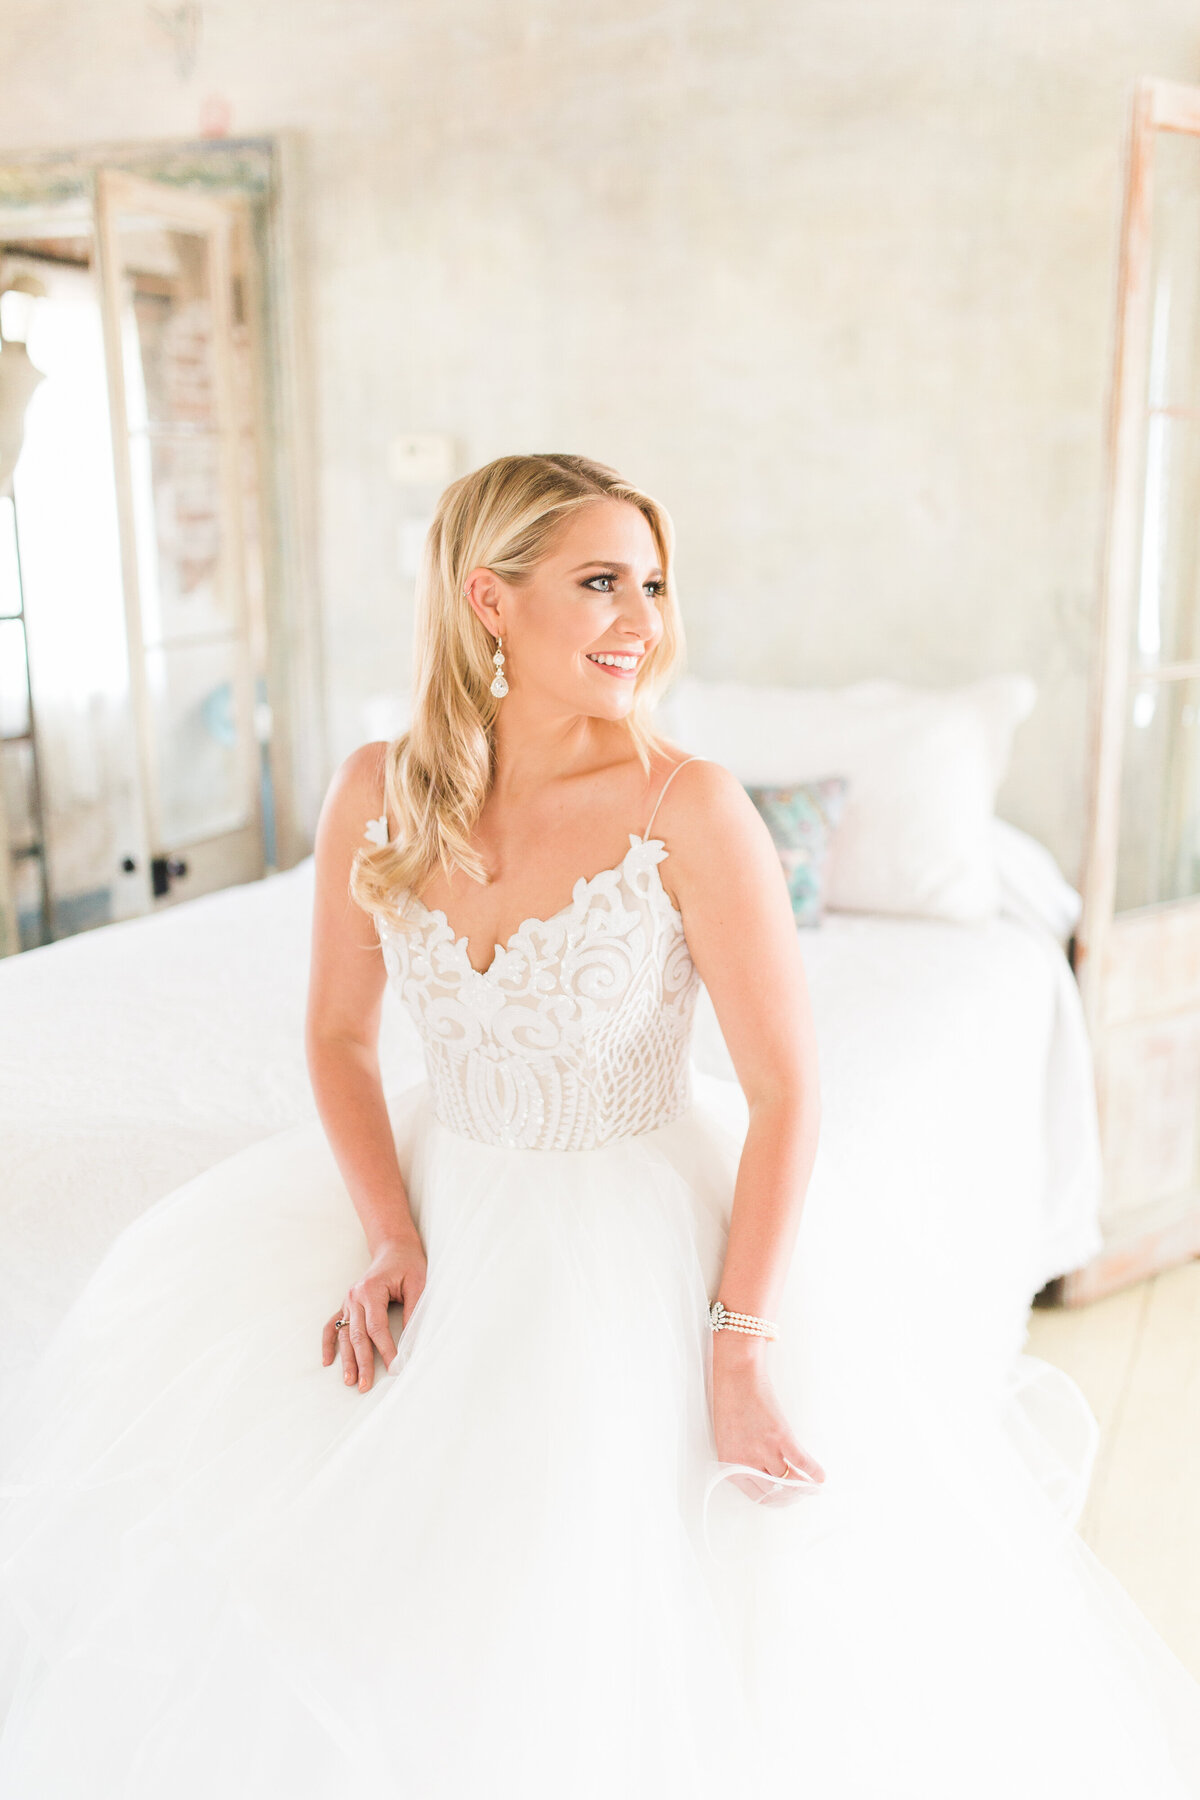 Renee Lorio Photography South Louisiana Wedding Engagement Light Airy Portrait Photographer Photos Southern Clean Colorful6